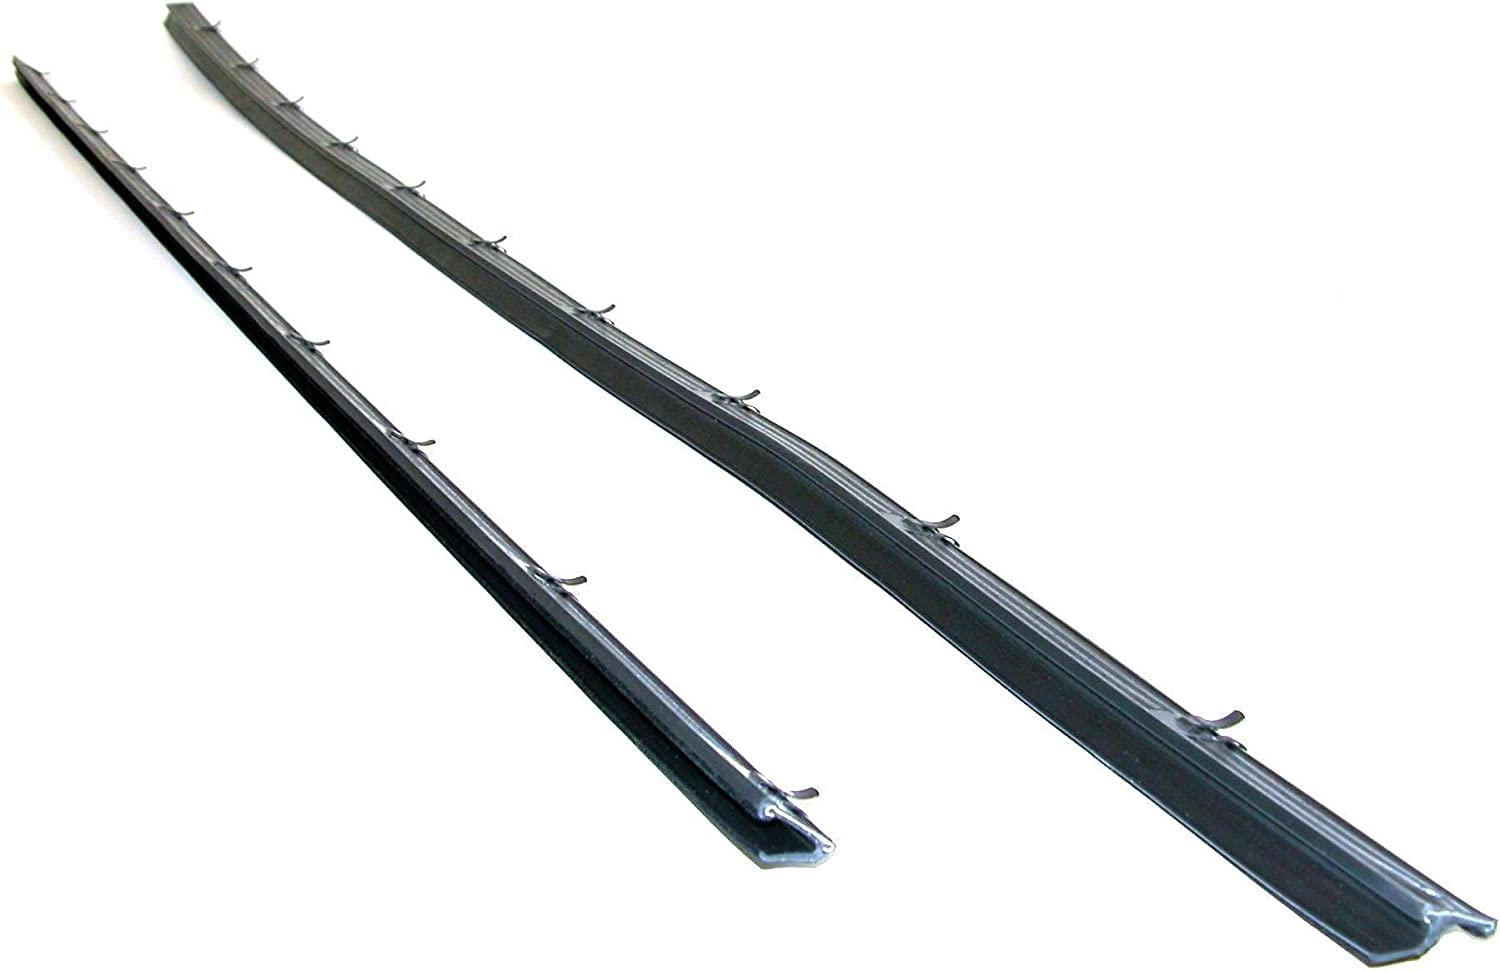 Tailgate Tail Gate Window Sweep Weatherstrip Seal Set Kit for 78-96 Ford Bronco